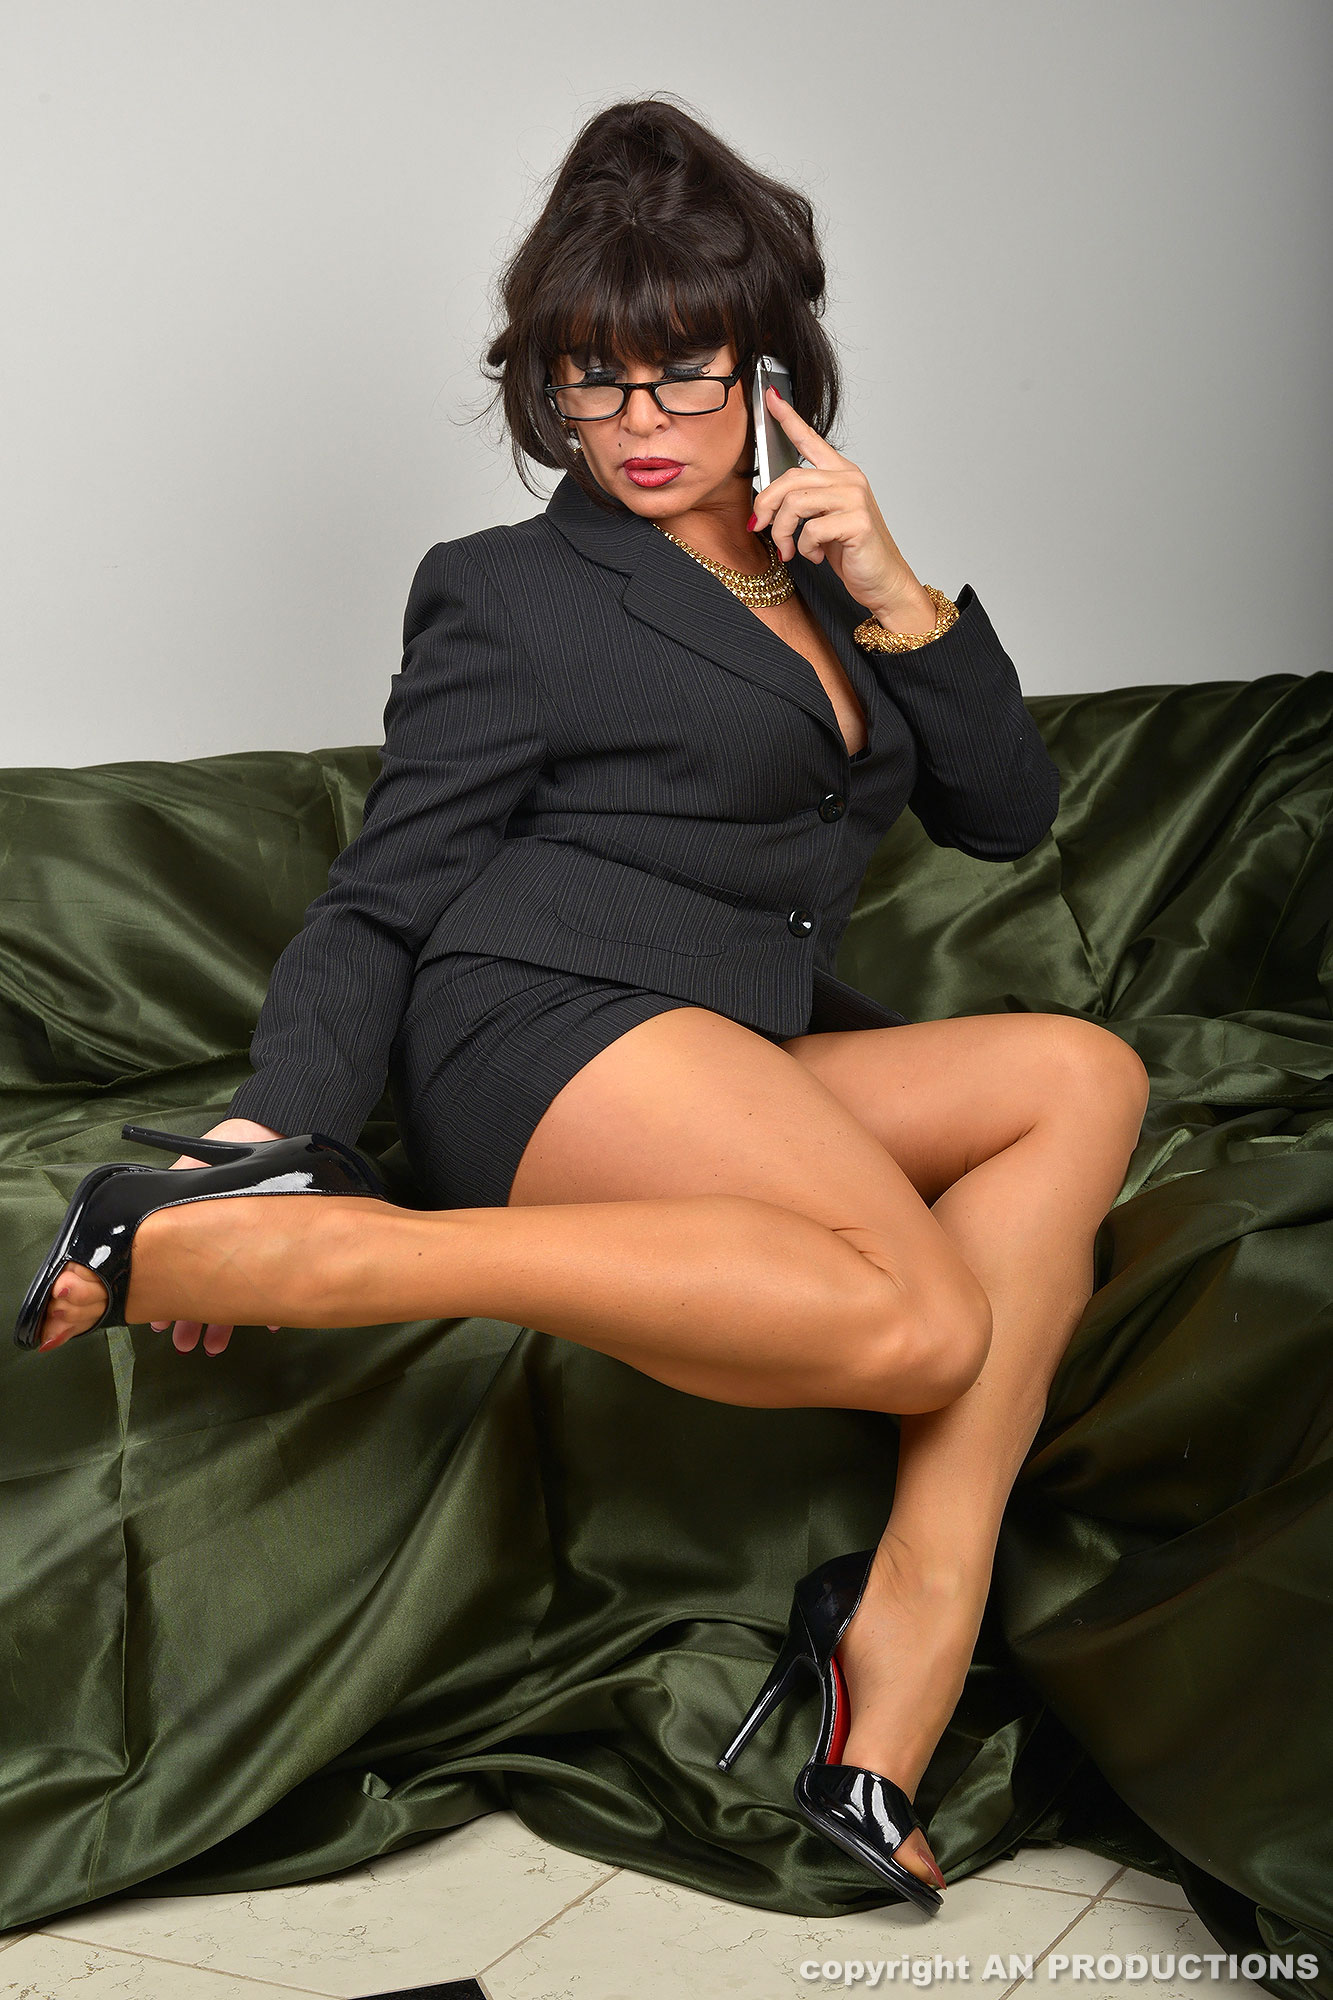 German MILF Amanda shows her legs in tan pantyhose and open-toe high heels.  Pictures provided by Amanda Nylons site.